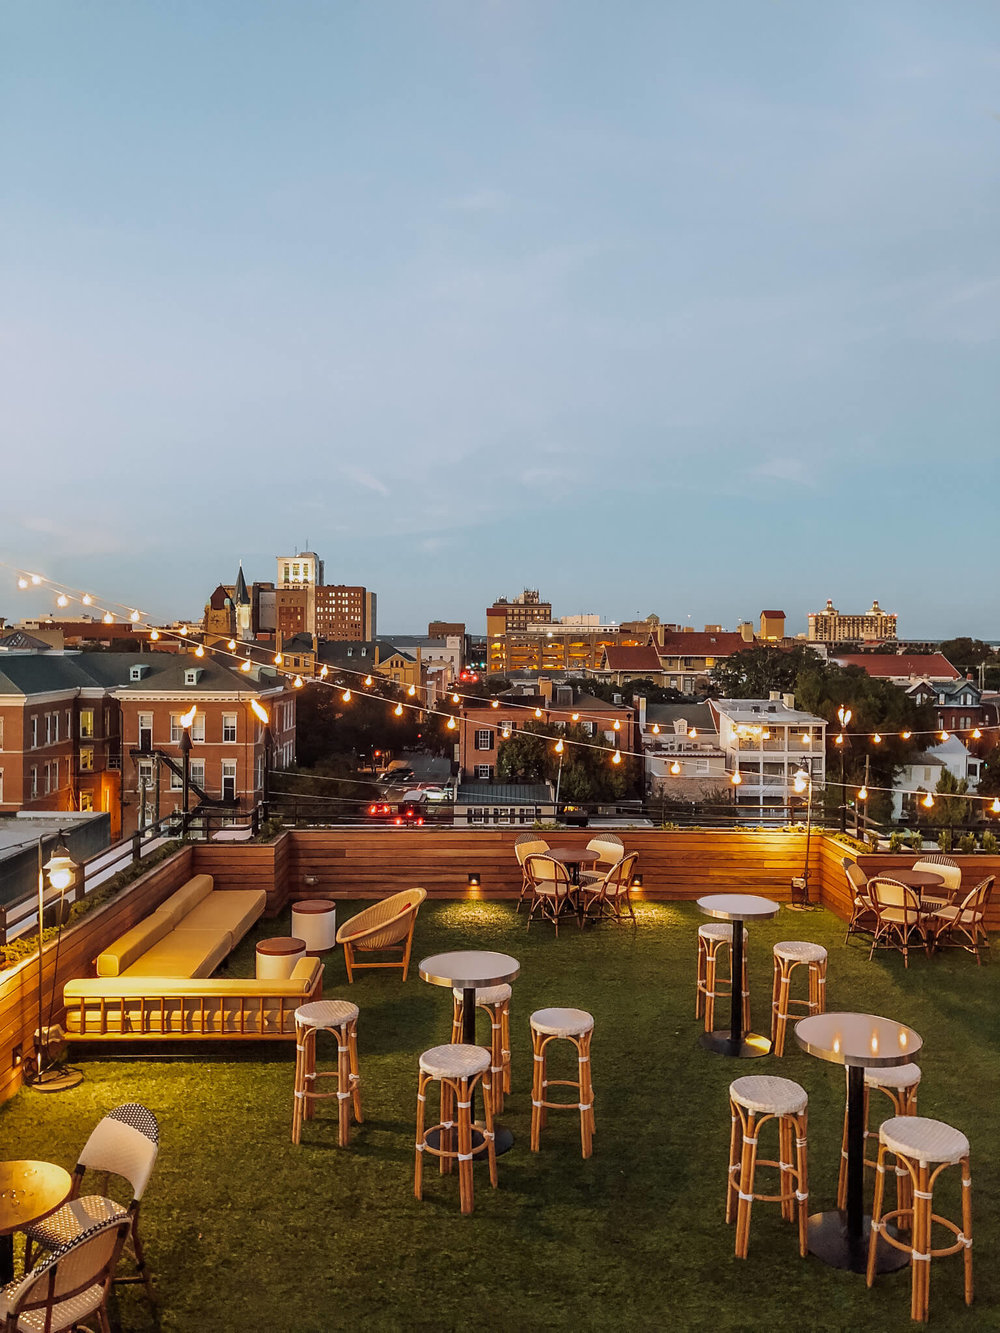 Perry Lane's rooftop bar offers sweeping views and delicious drinks